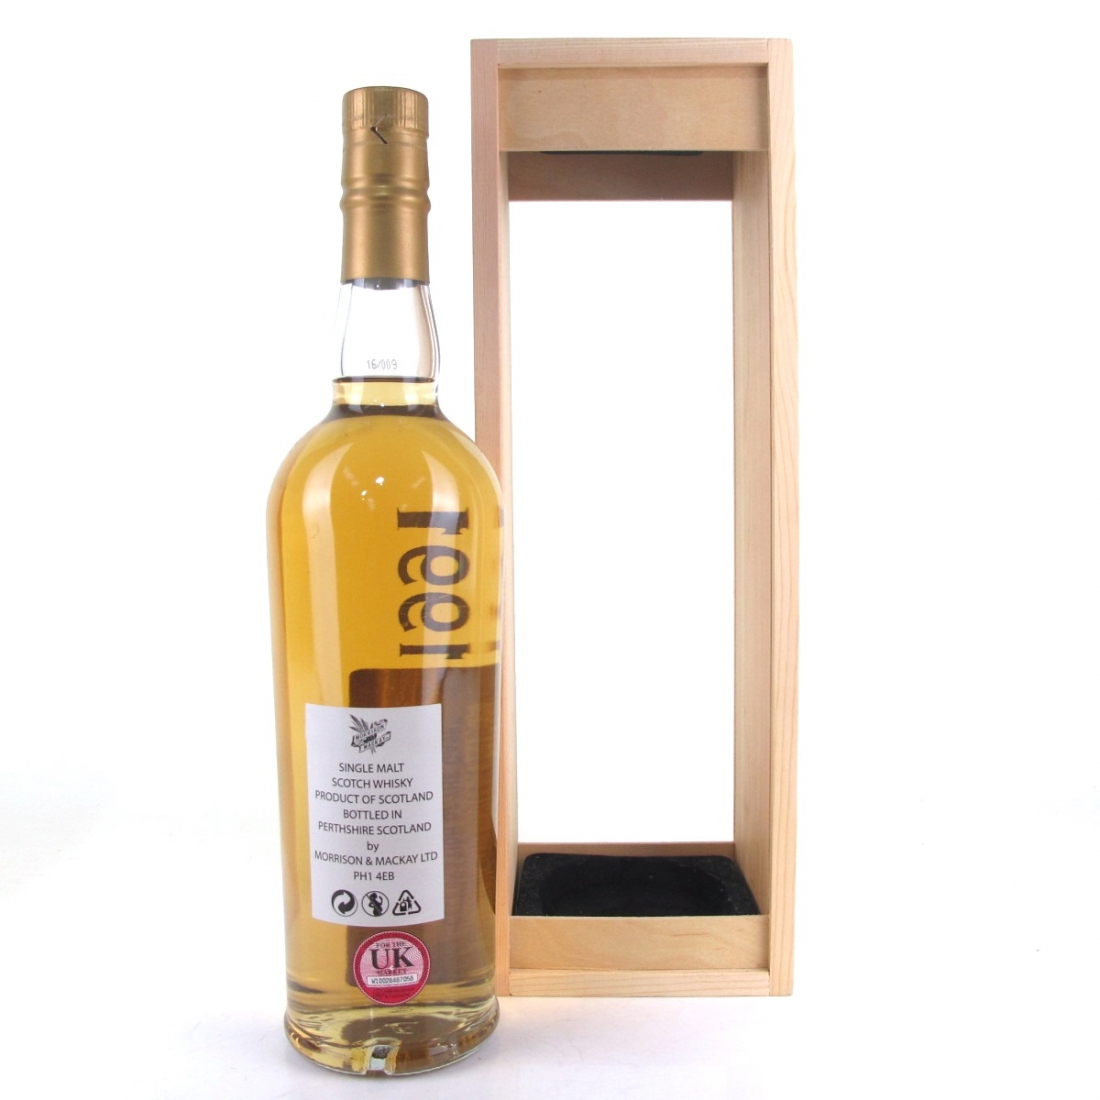 Bowmore 1991 Carn Mor / Celebration of the Cask